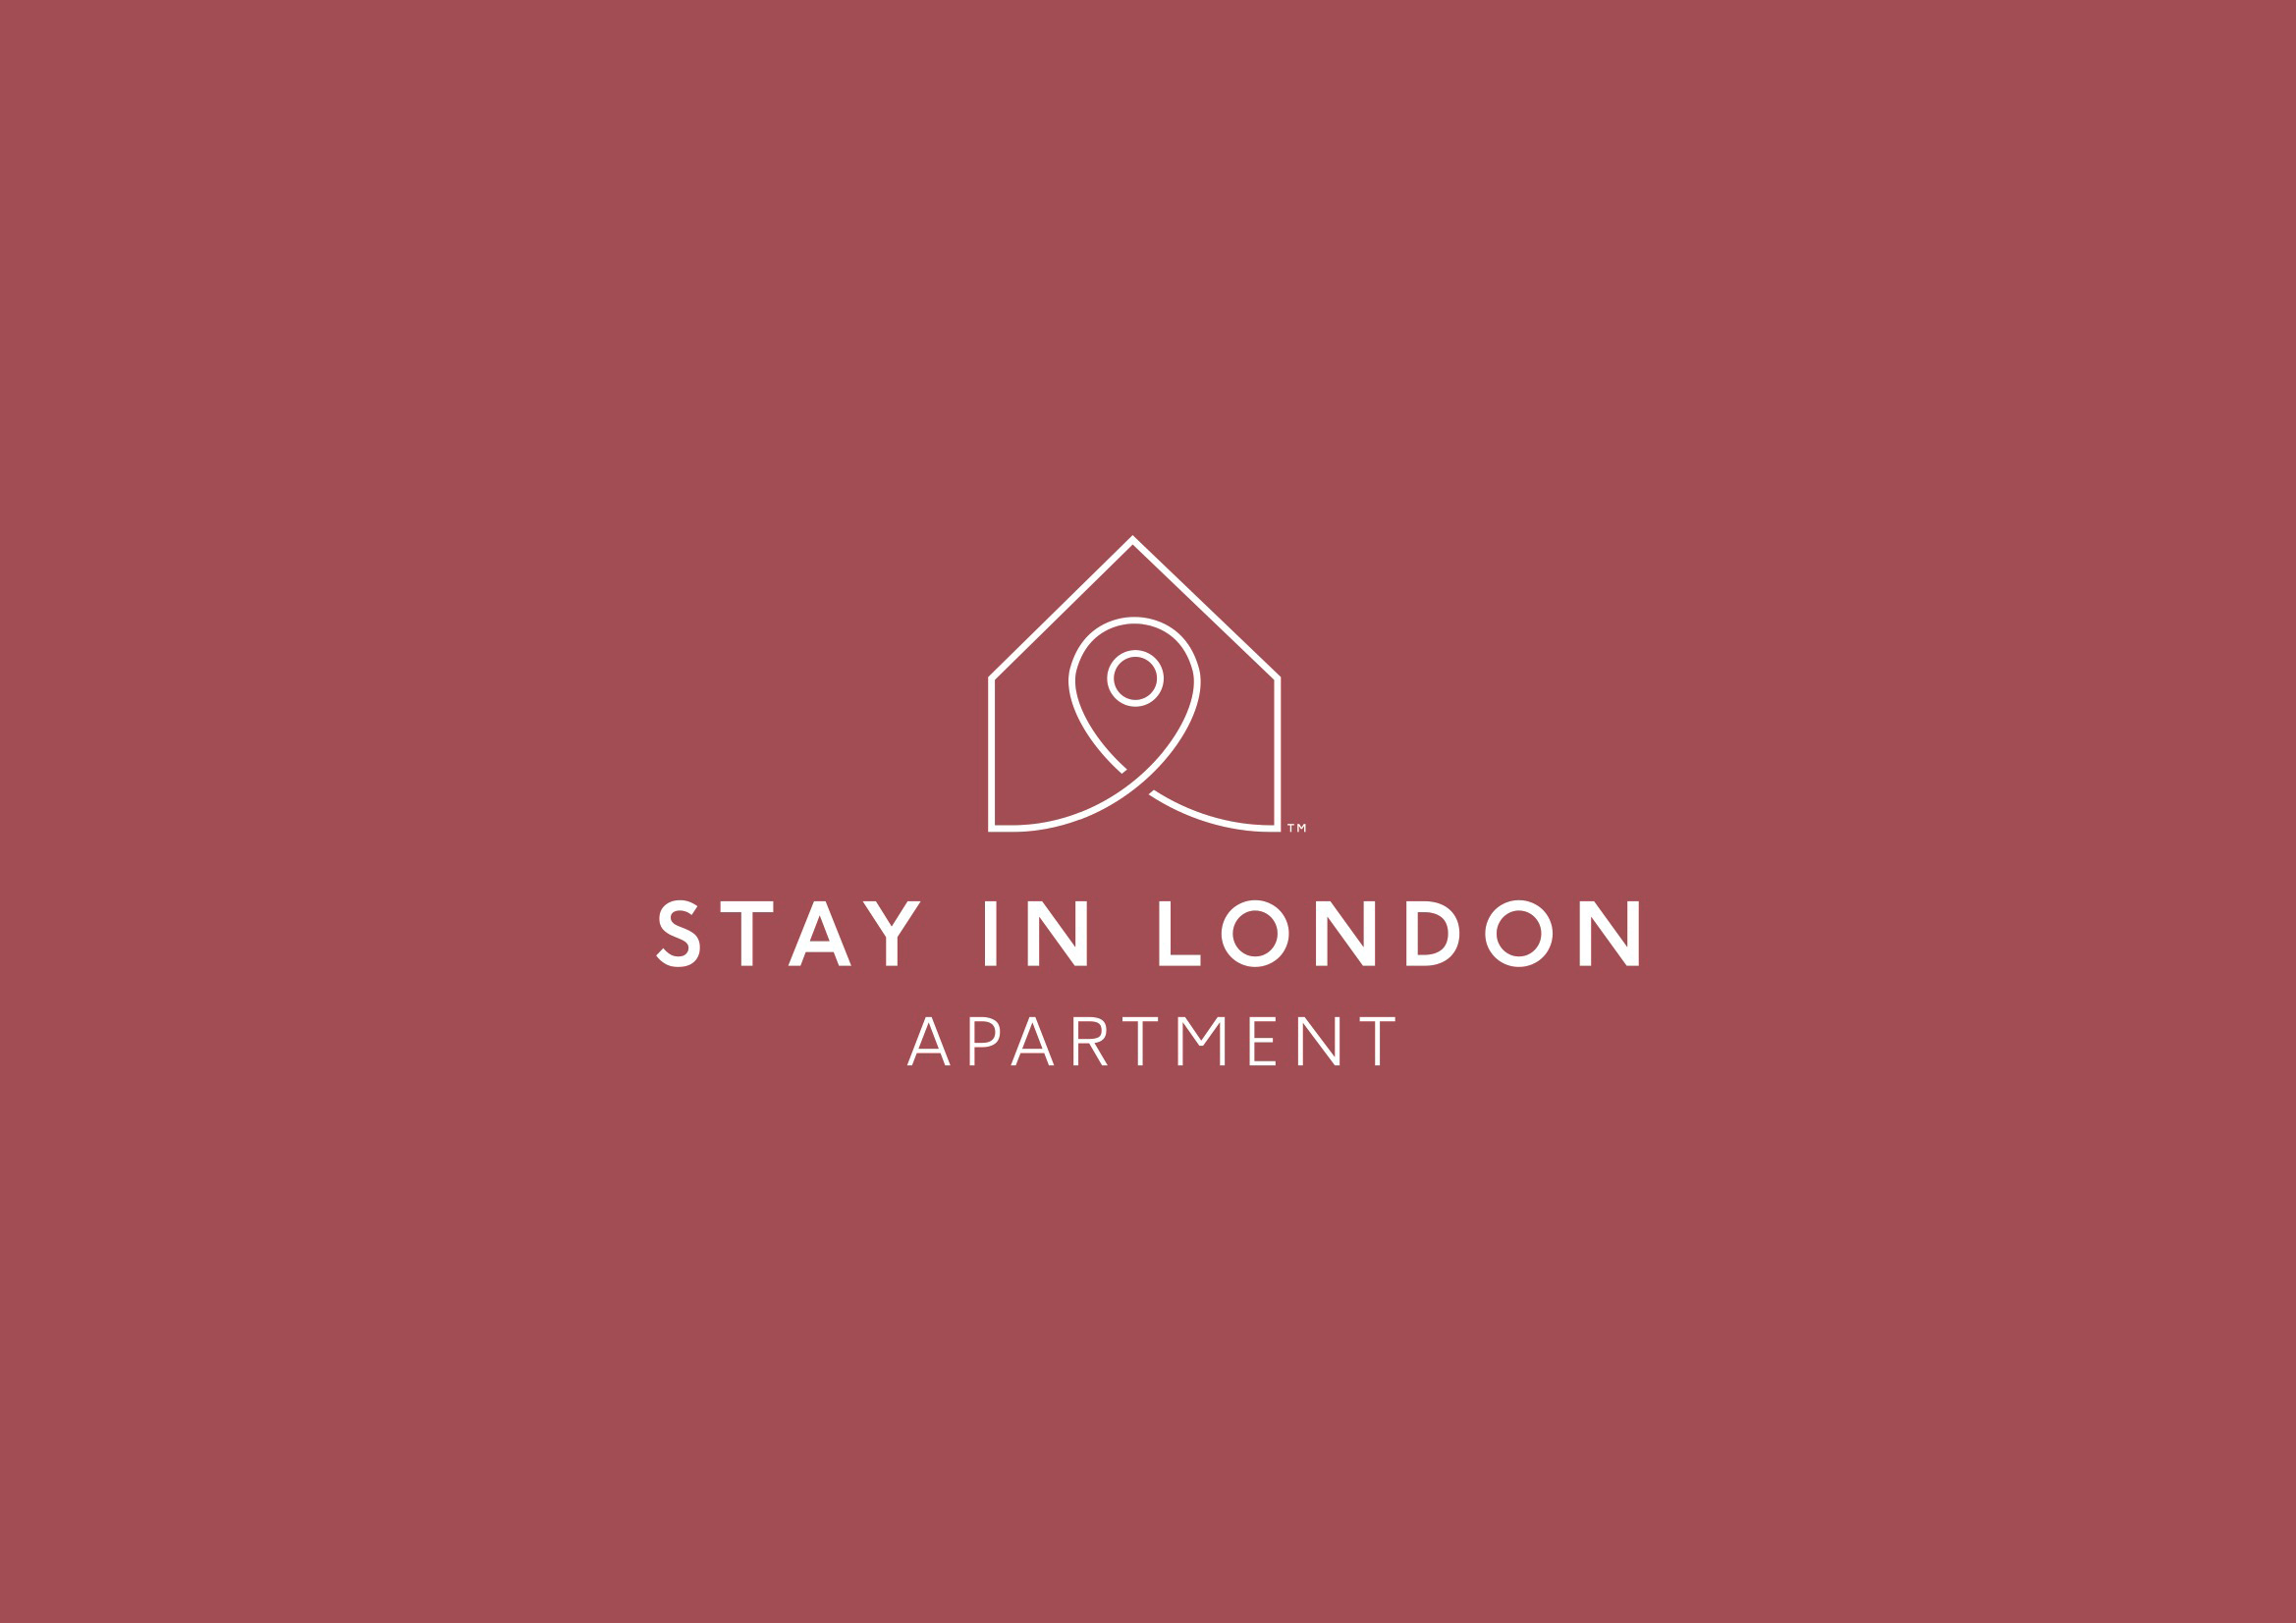 Stay in London Apartmental